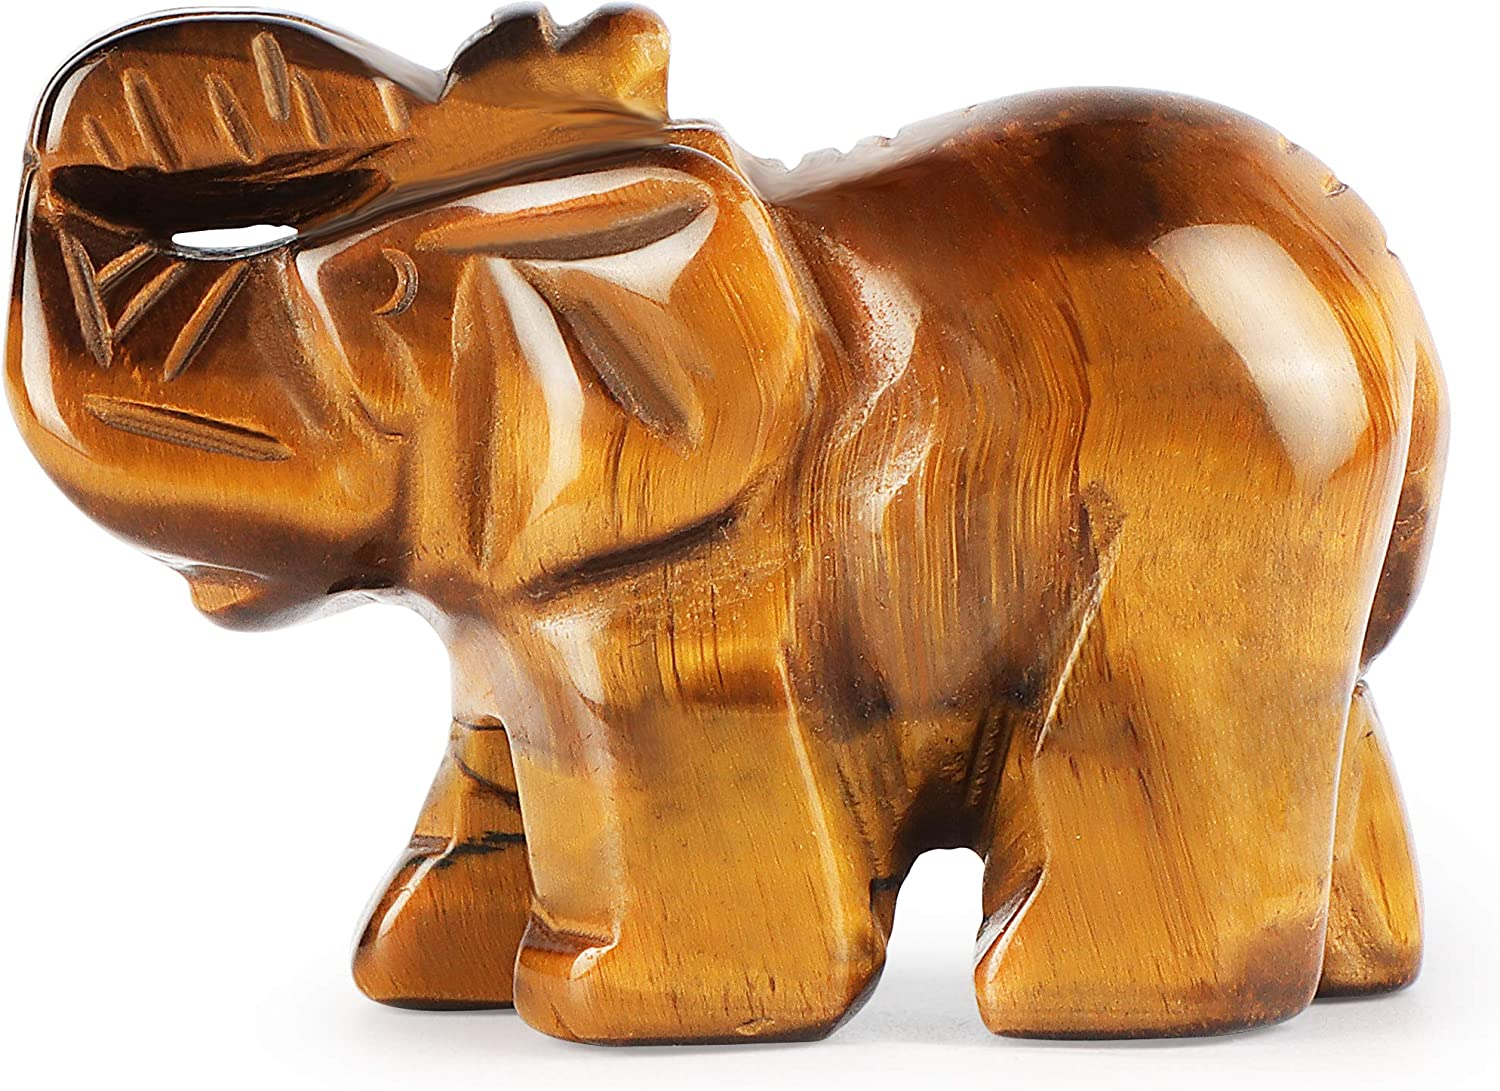 Artistone2 Elephant Stone Statue,Natural Hand- Carved Healing Crystal Gemstones Elephant Figurine Statues Home Decor Desk Ornametns with Gift Box(Yellow Tiger Eye